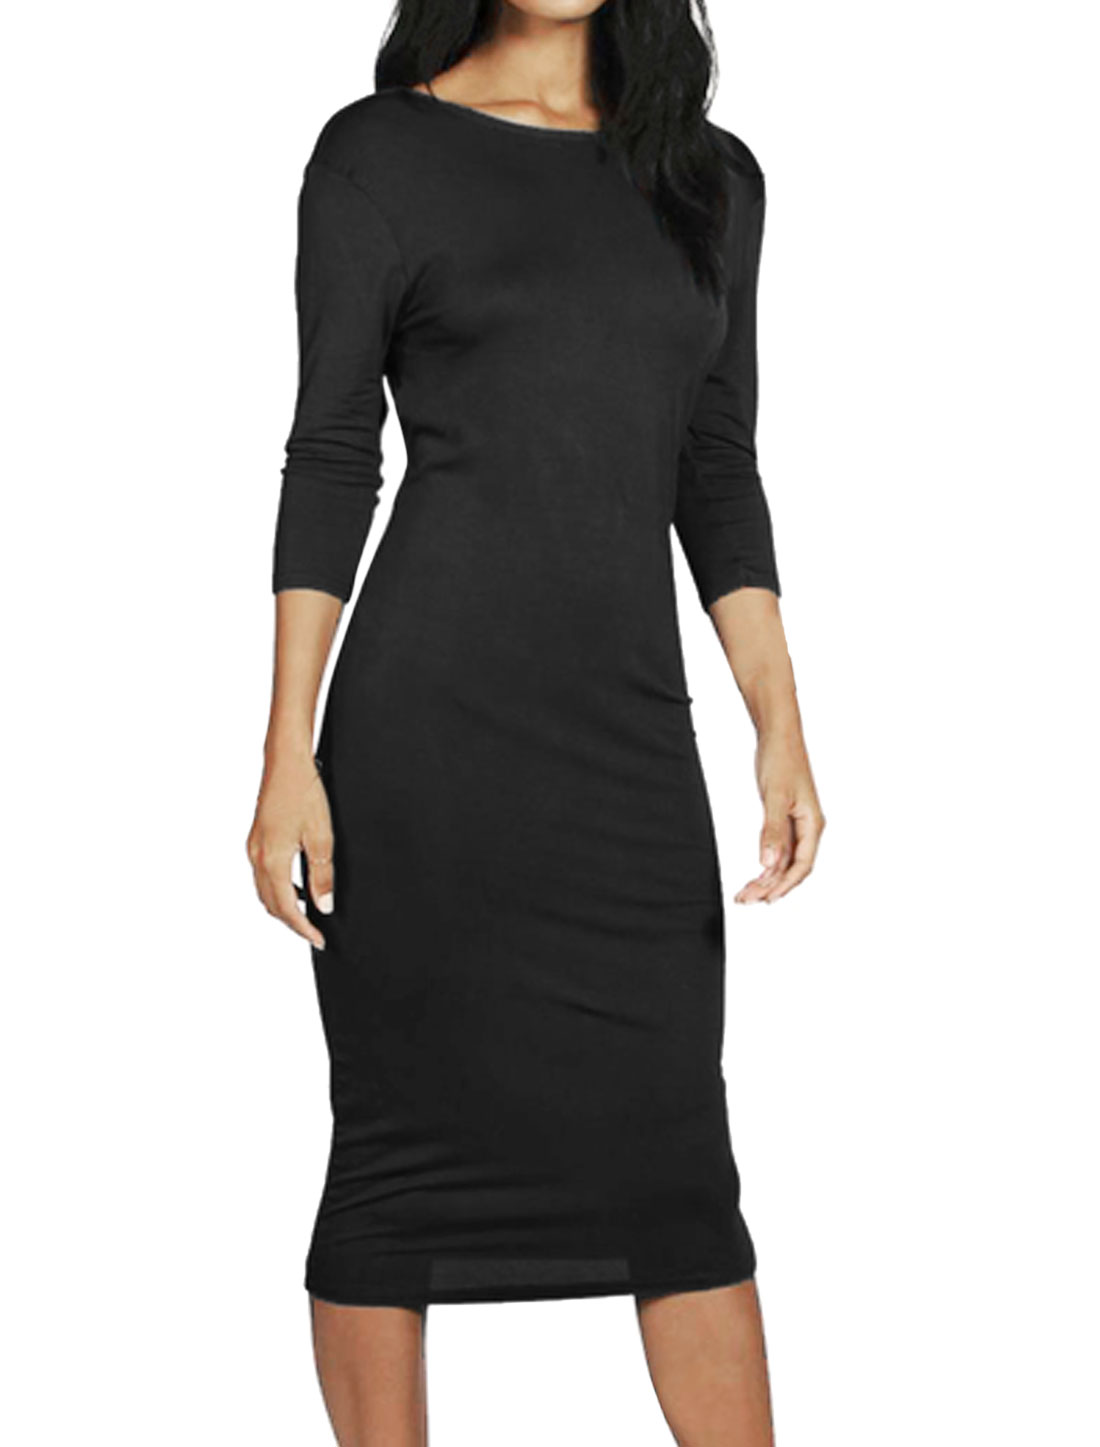 Women Bracelet Sleeves Open Back Bodycon Dress Black M